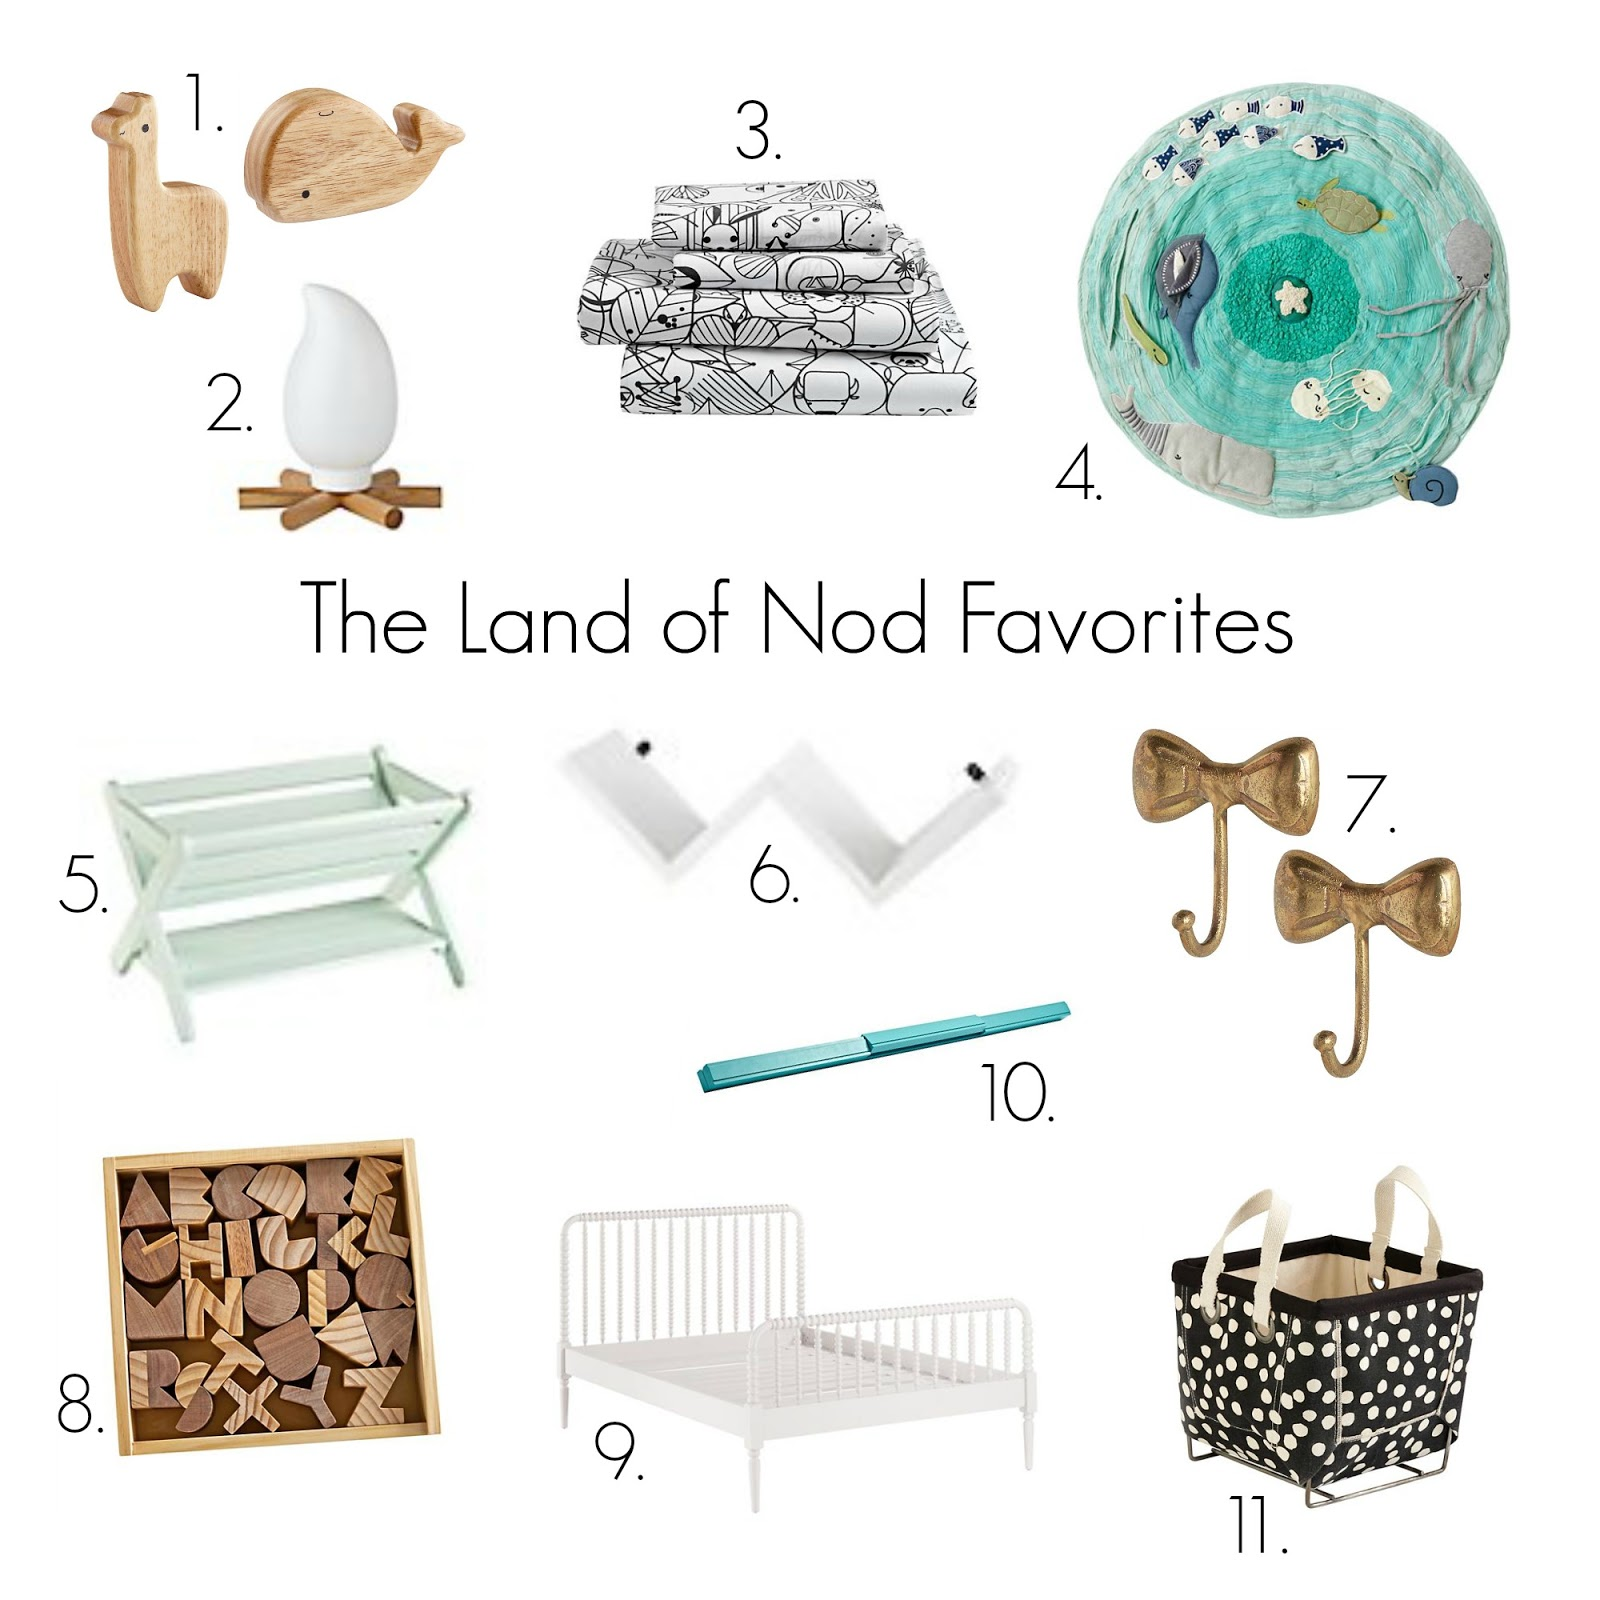 Welcome to the Land of Nod vineyard & winery. Situated in the foothills of the Berkshires, on land steeped in early American History, the Land of Nod vineyard & winery continues the American tradition of skill and excellence in craftsmanship. We believe.